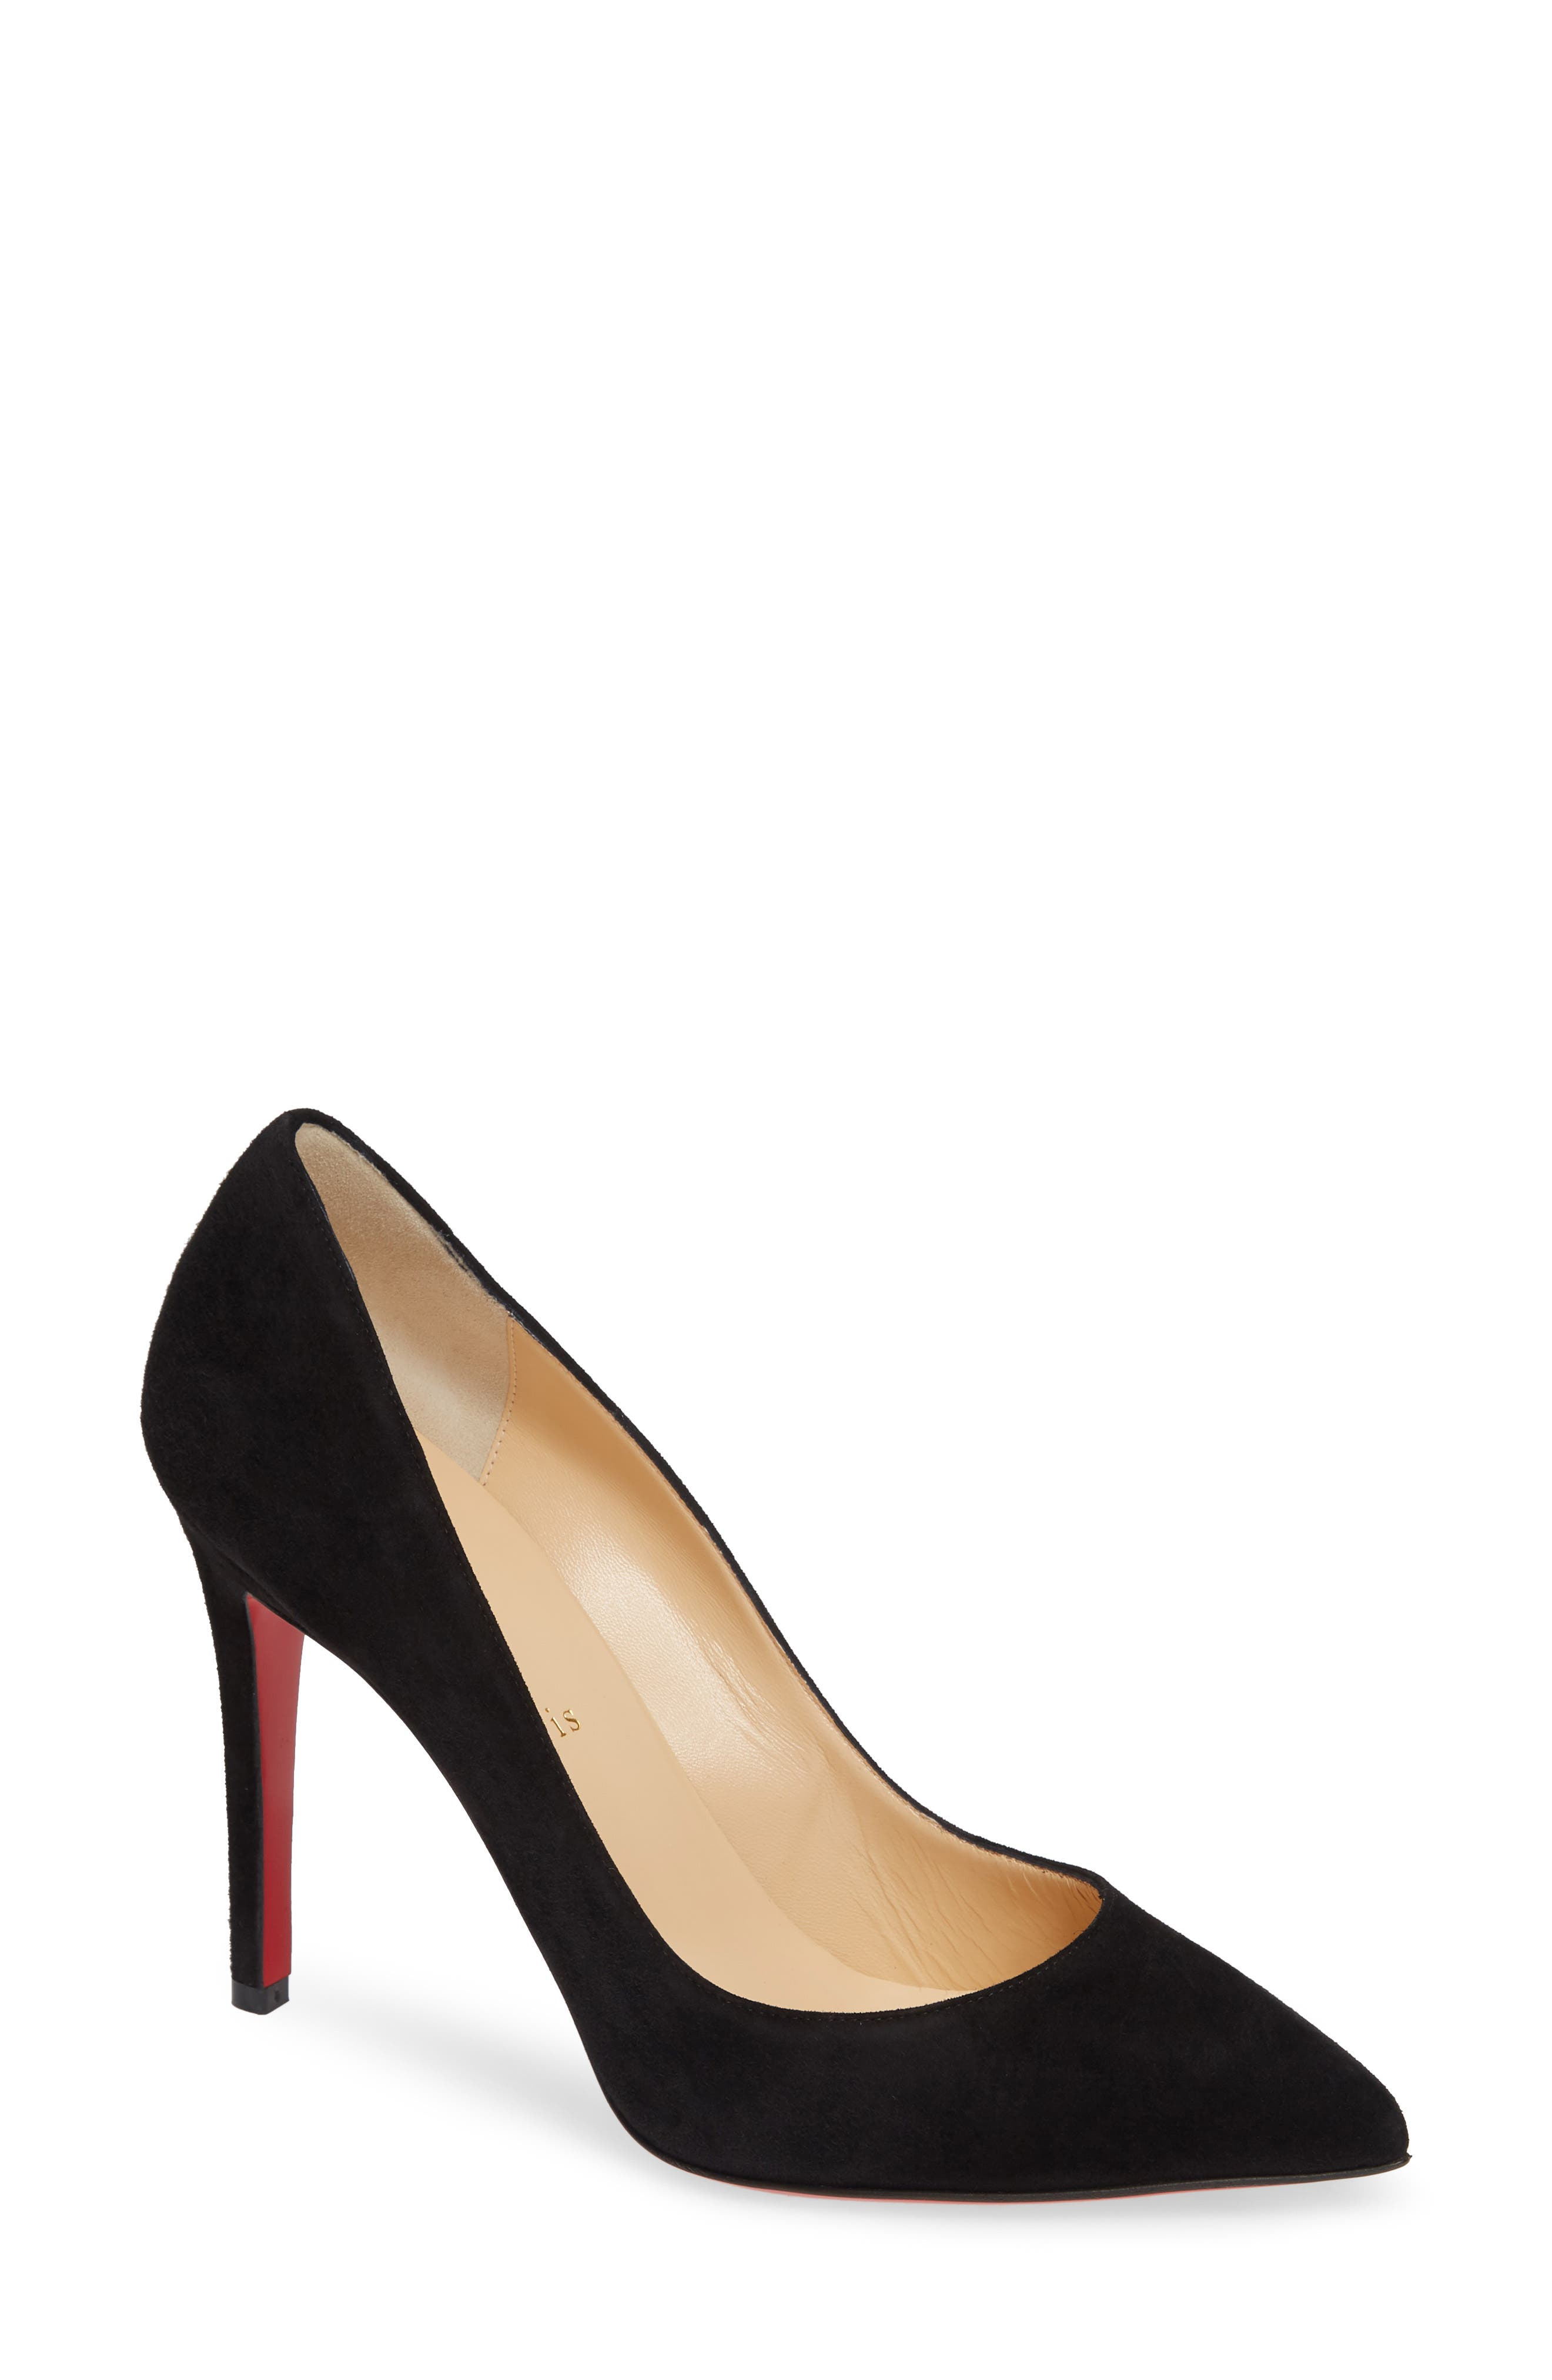 CHRISTIAN LOUBOUTIN Pigalle Pointy Toe Pump, Main, color, BLACK SUEDE